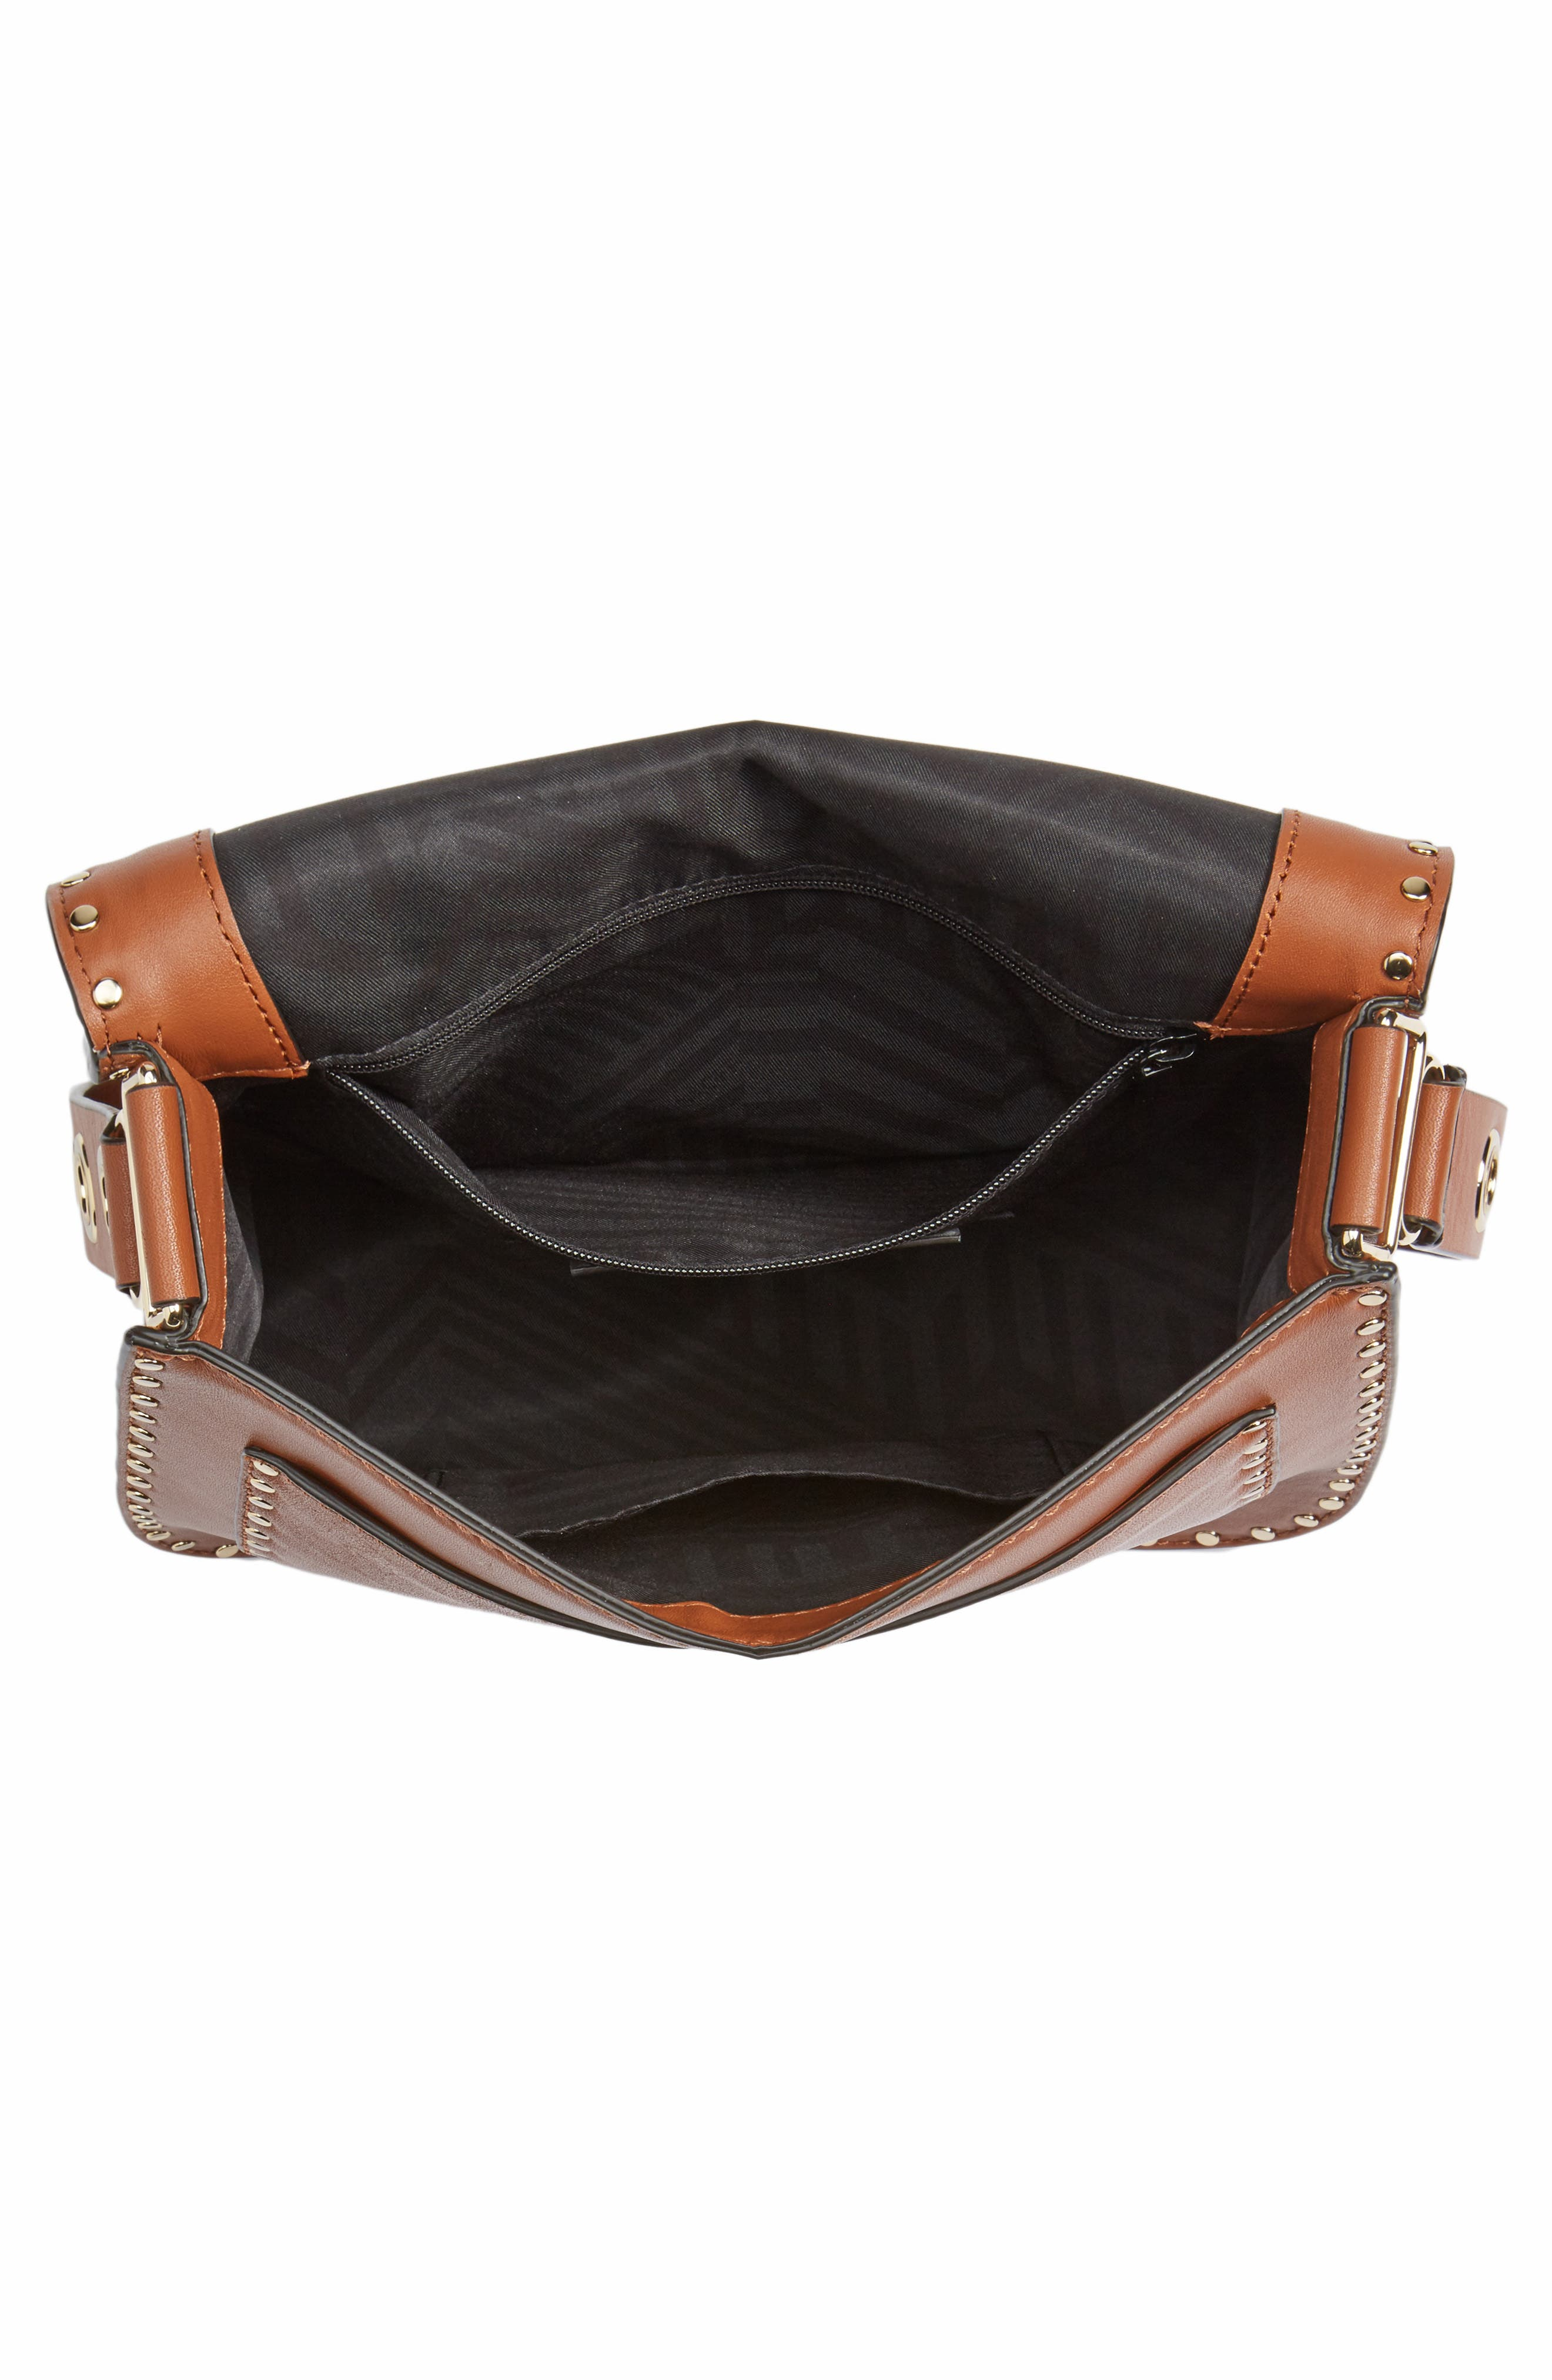 Large Midnighter Leather Crossbody Bag,                             Alternate thumbnail 4, color,                             230